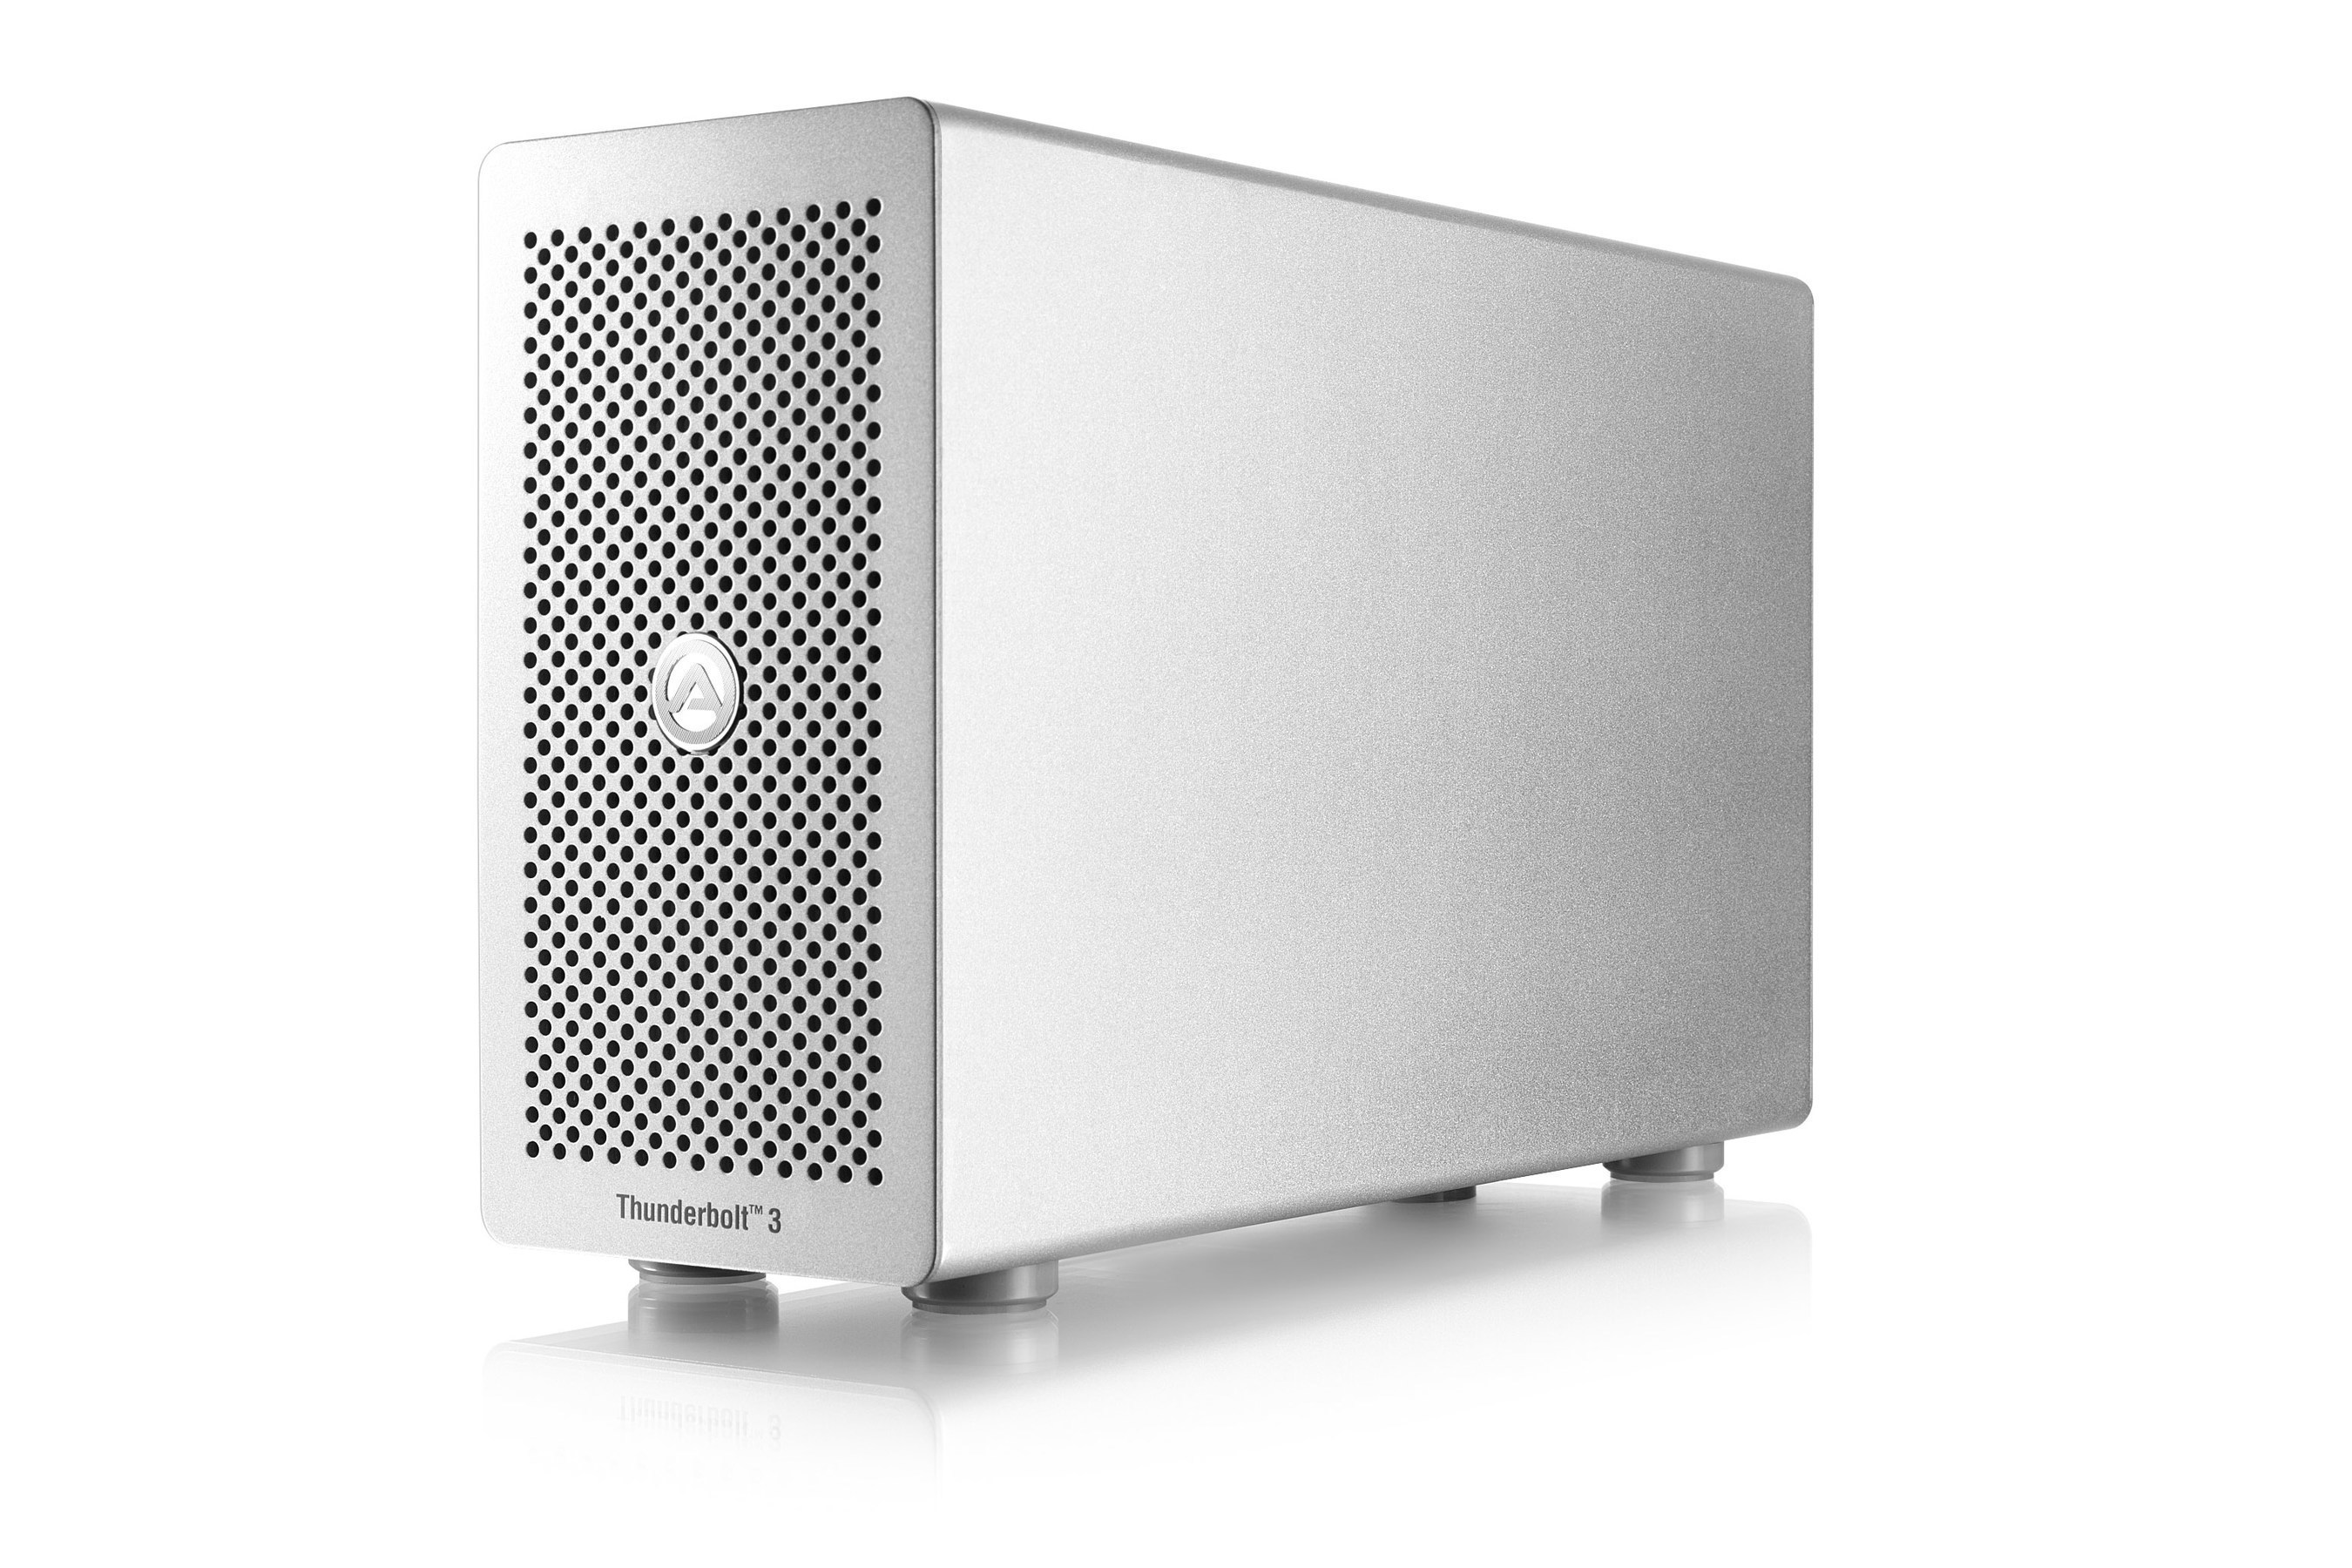 Akitio Releases Thunder3 PCIe Box, the World's First Thunderbolt 3 PCIe Expansion Chassis